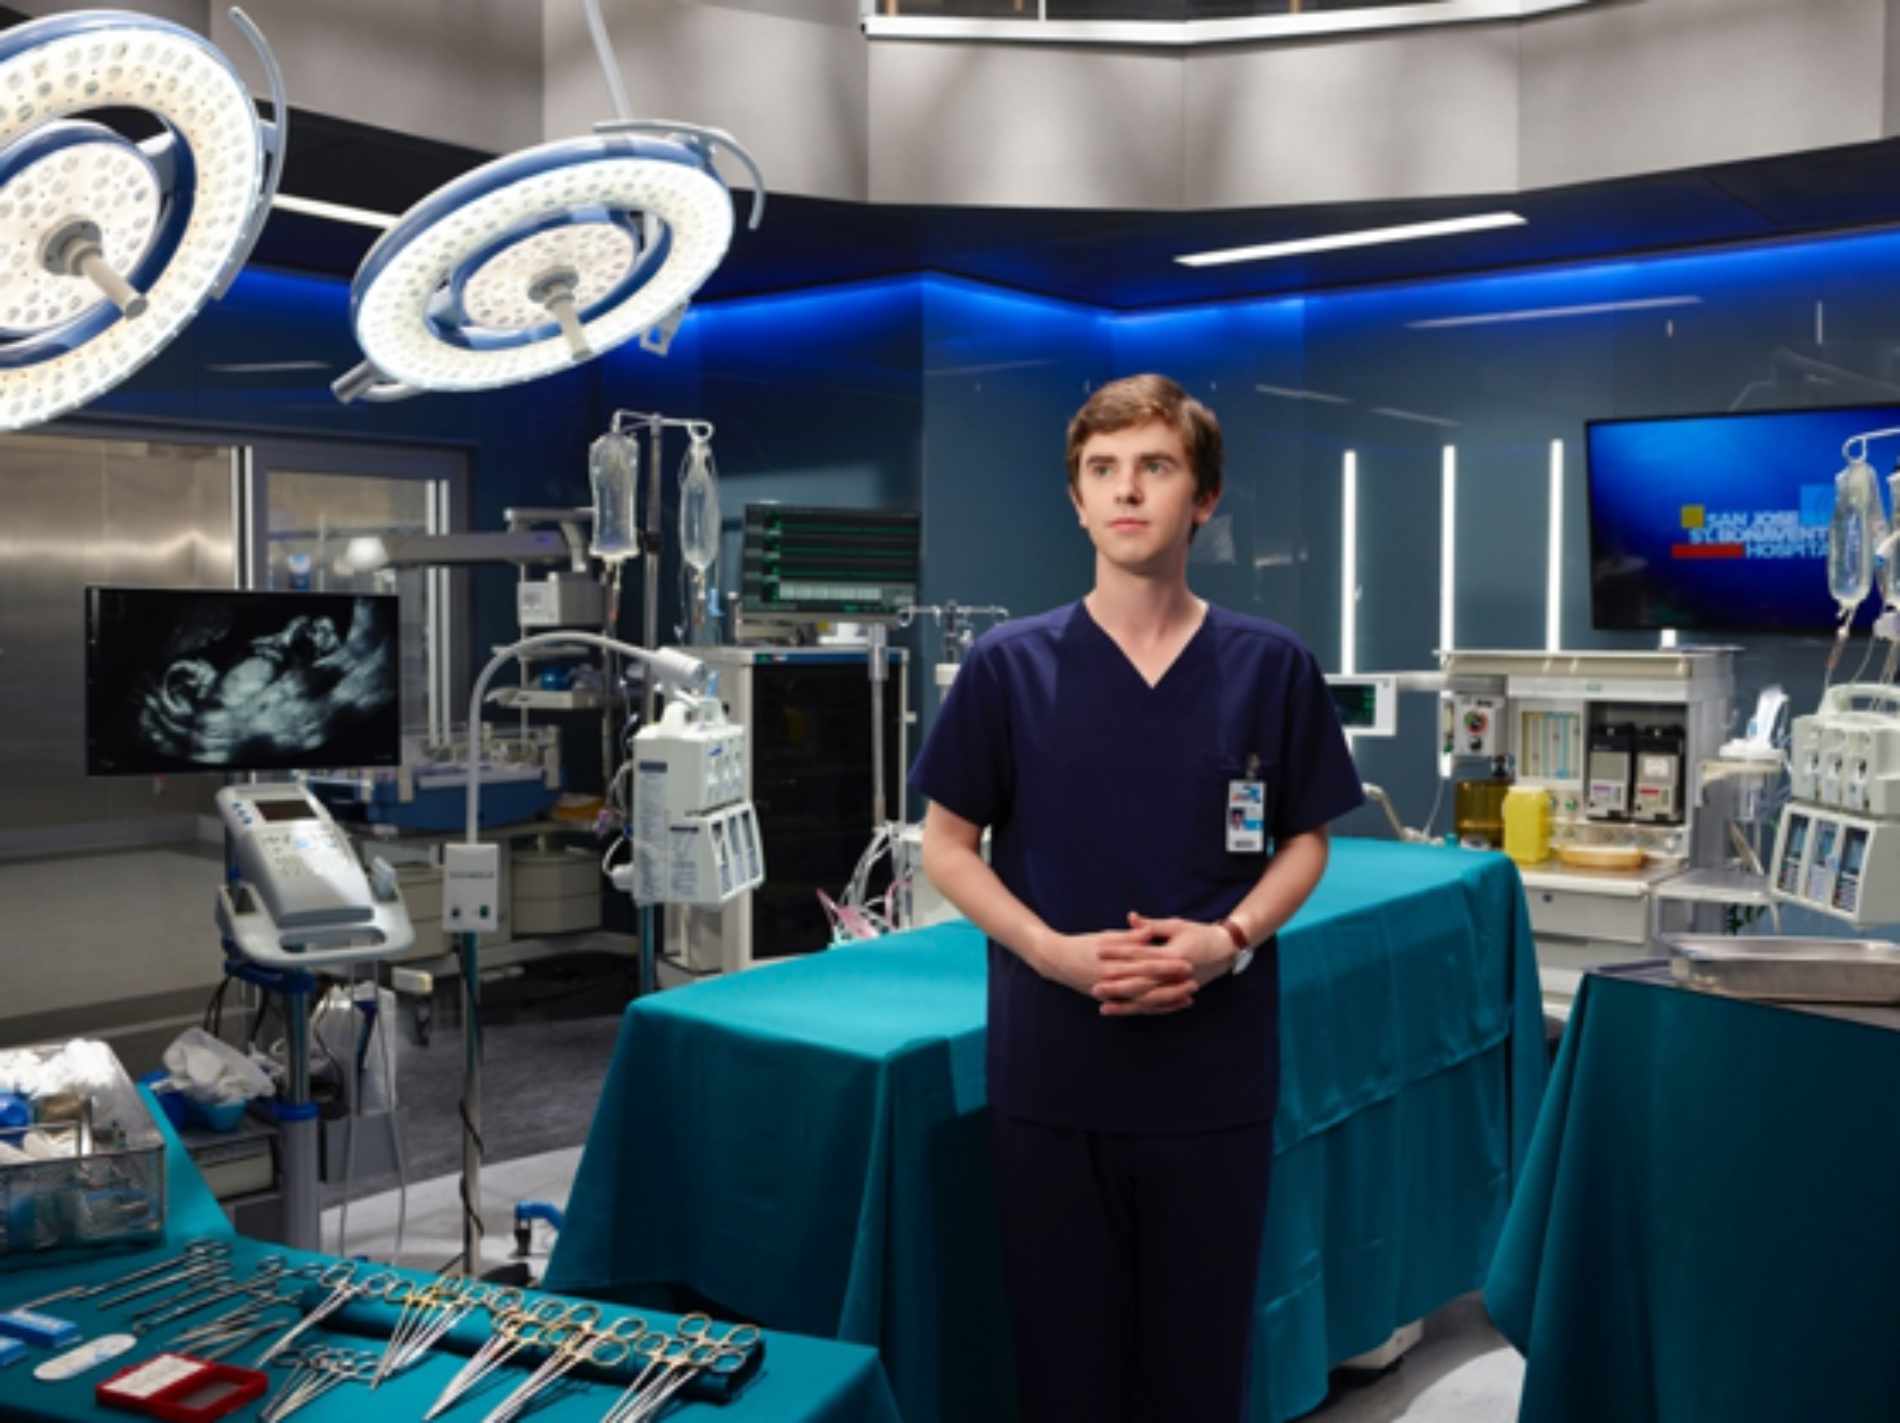 THE GOOD DOCTOR LLEGA A SONY CHANNEL